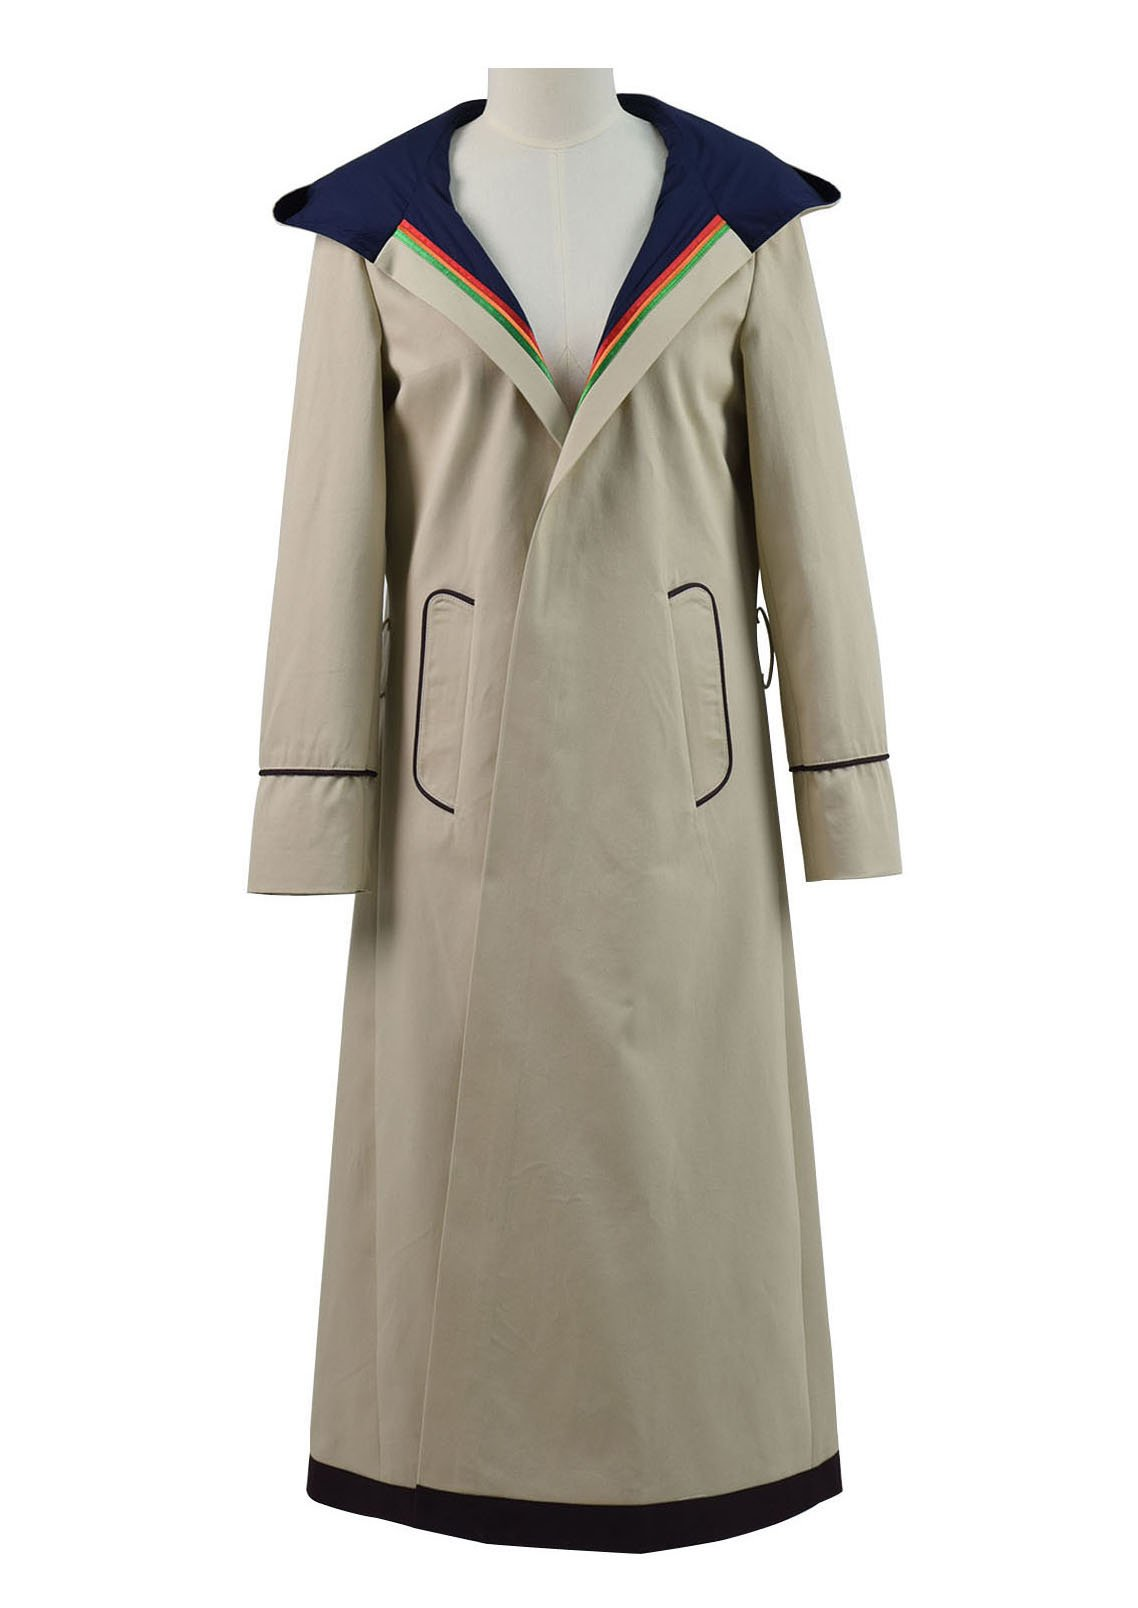 Very Last Shop Classic Sci-Fi TV Series 13th Doctor Costume Women Beige Trench Coat Overcoat (Beige, Custom-Made)